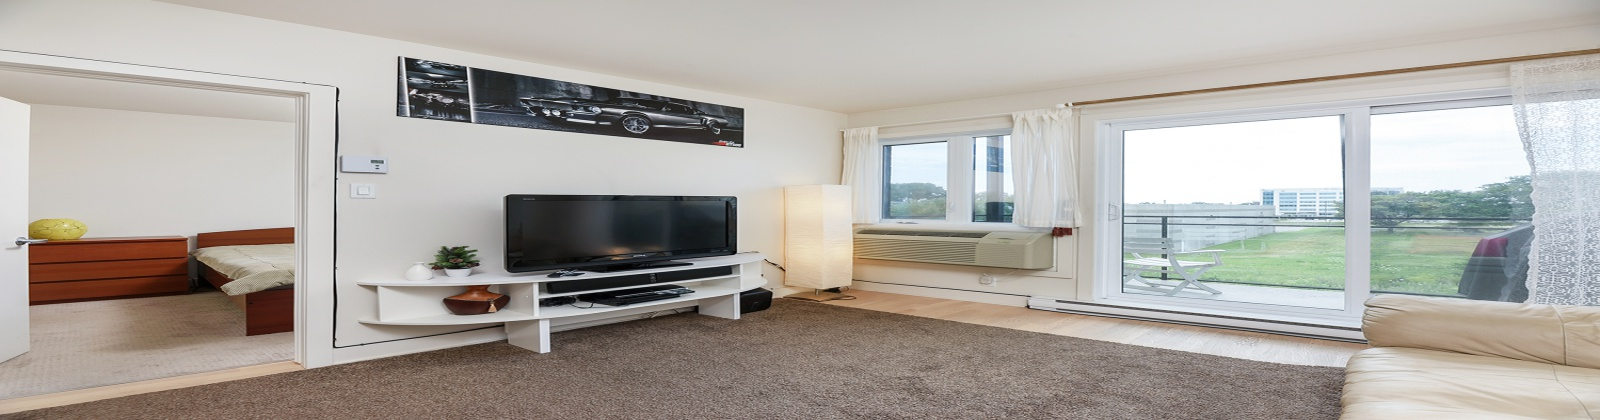 Apartment,For Sale,1043